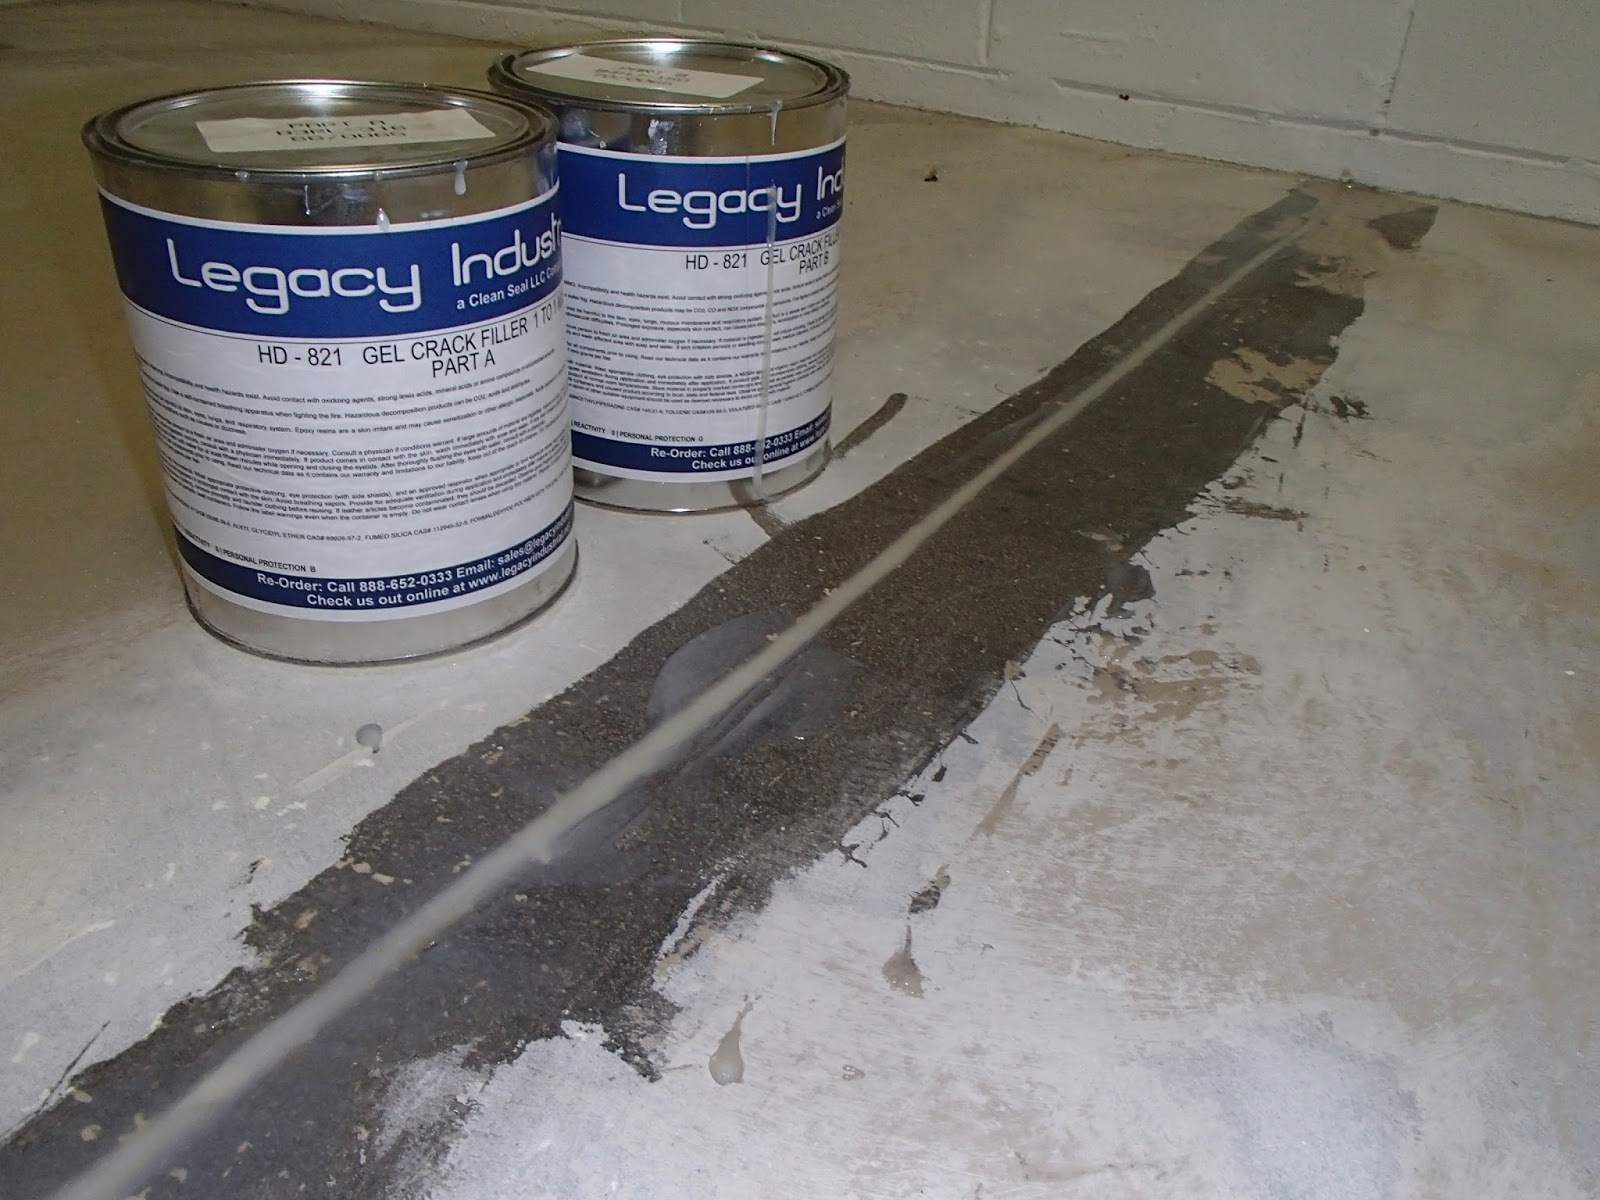 Epoxy Garage Floor Expansion Joints Legacy Industrial S Blog Site Filling Expansion Cuts Joints For